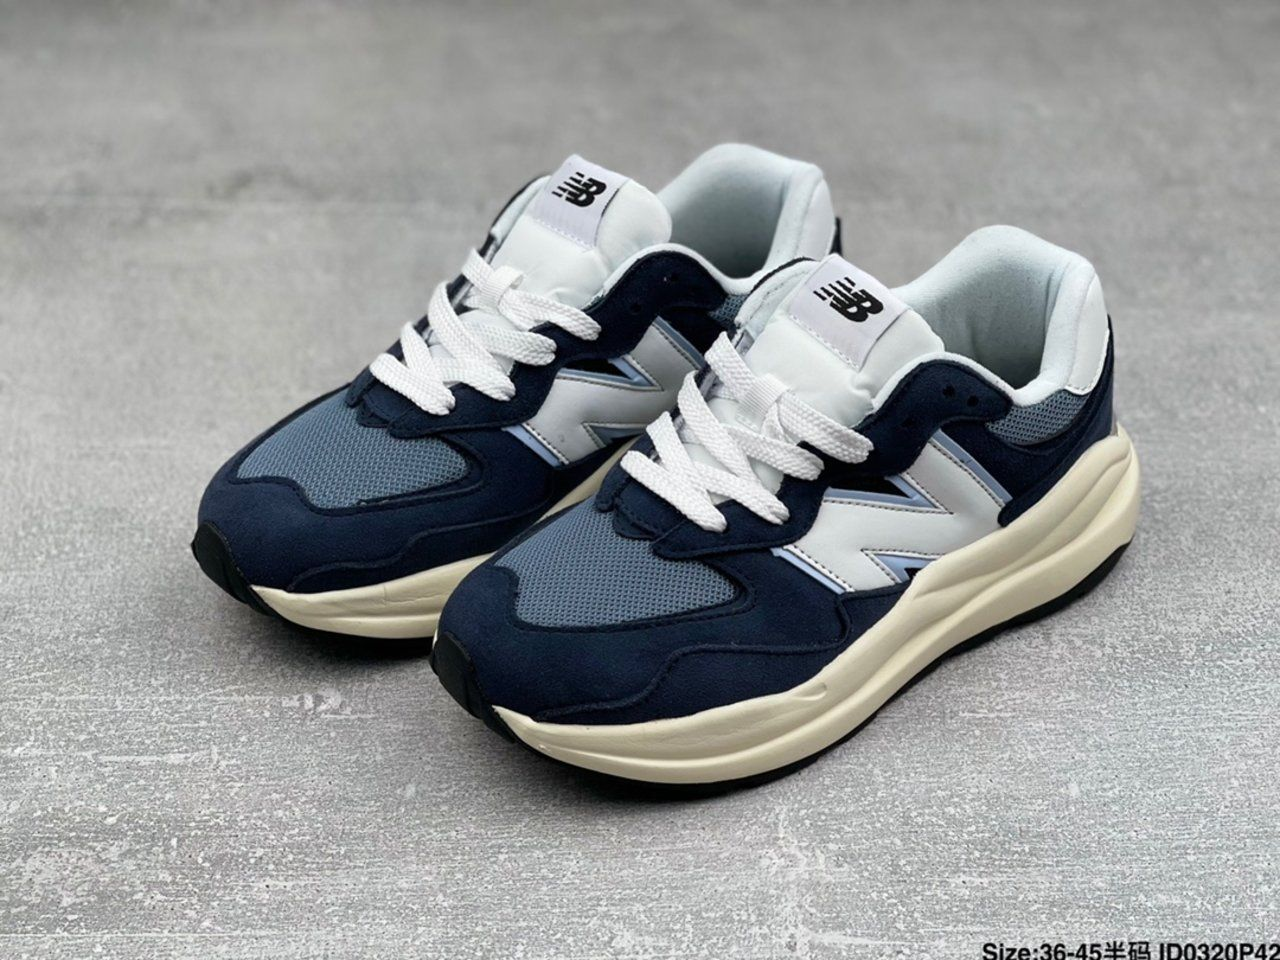 New New Balance W5740CD jogging shoes overall